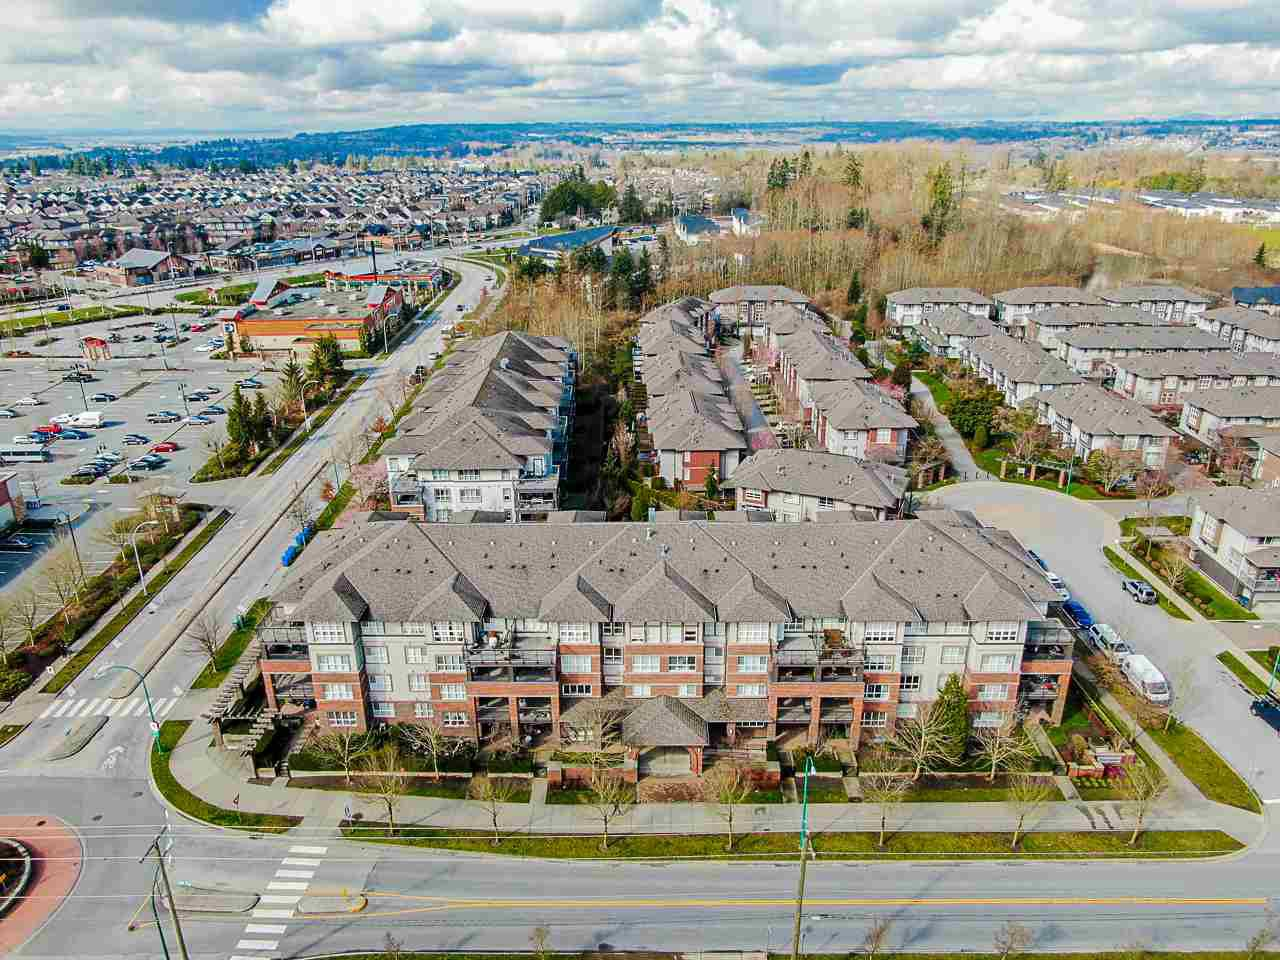 """Main Photo: 302 6815 188 Street in Surrey: Clayton Condo for sale in """"Compass"""" (Cloverdale)  : MLS®# R2457530"""